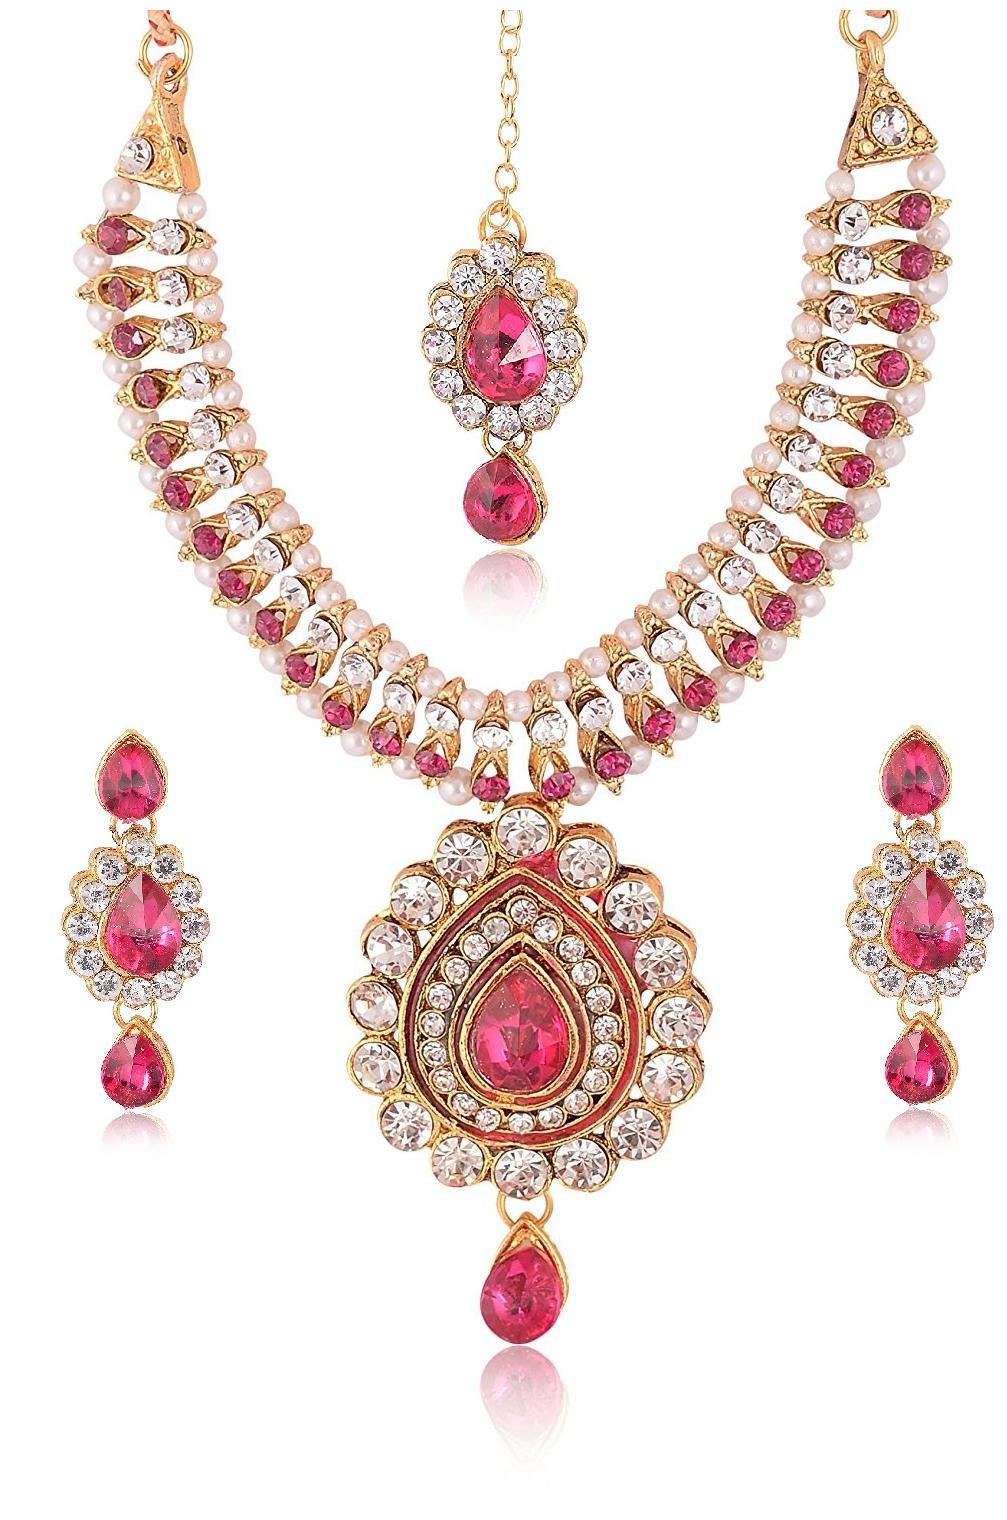 Urbanela Party Wear Garba Dandia Special Navratri Jewellery Necklace Set with Maang Tikka Earrings for Girls UNGB05-PINK